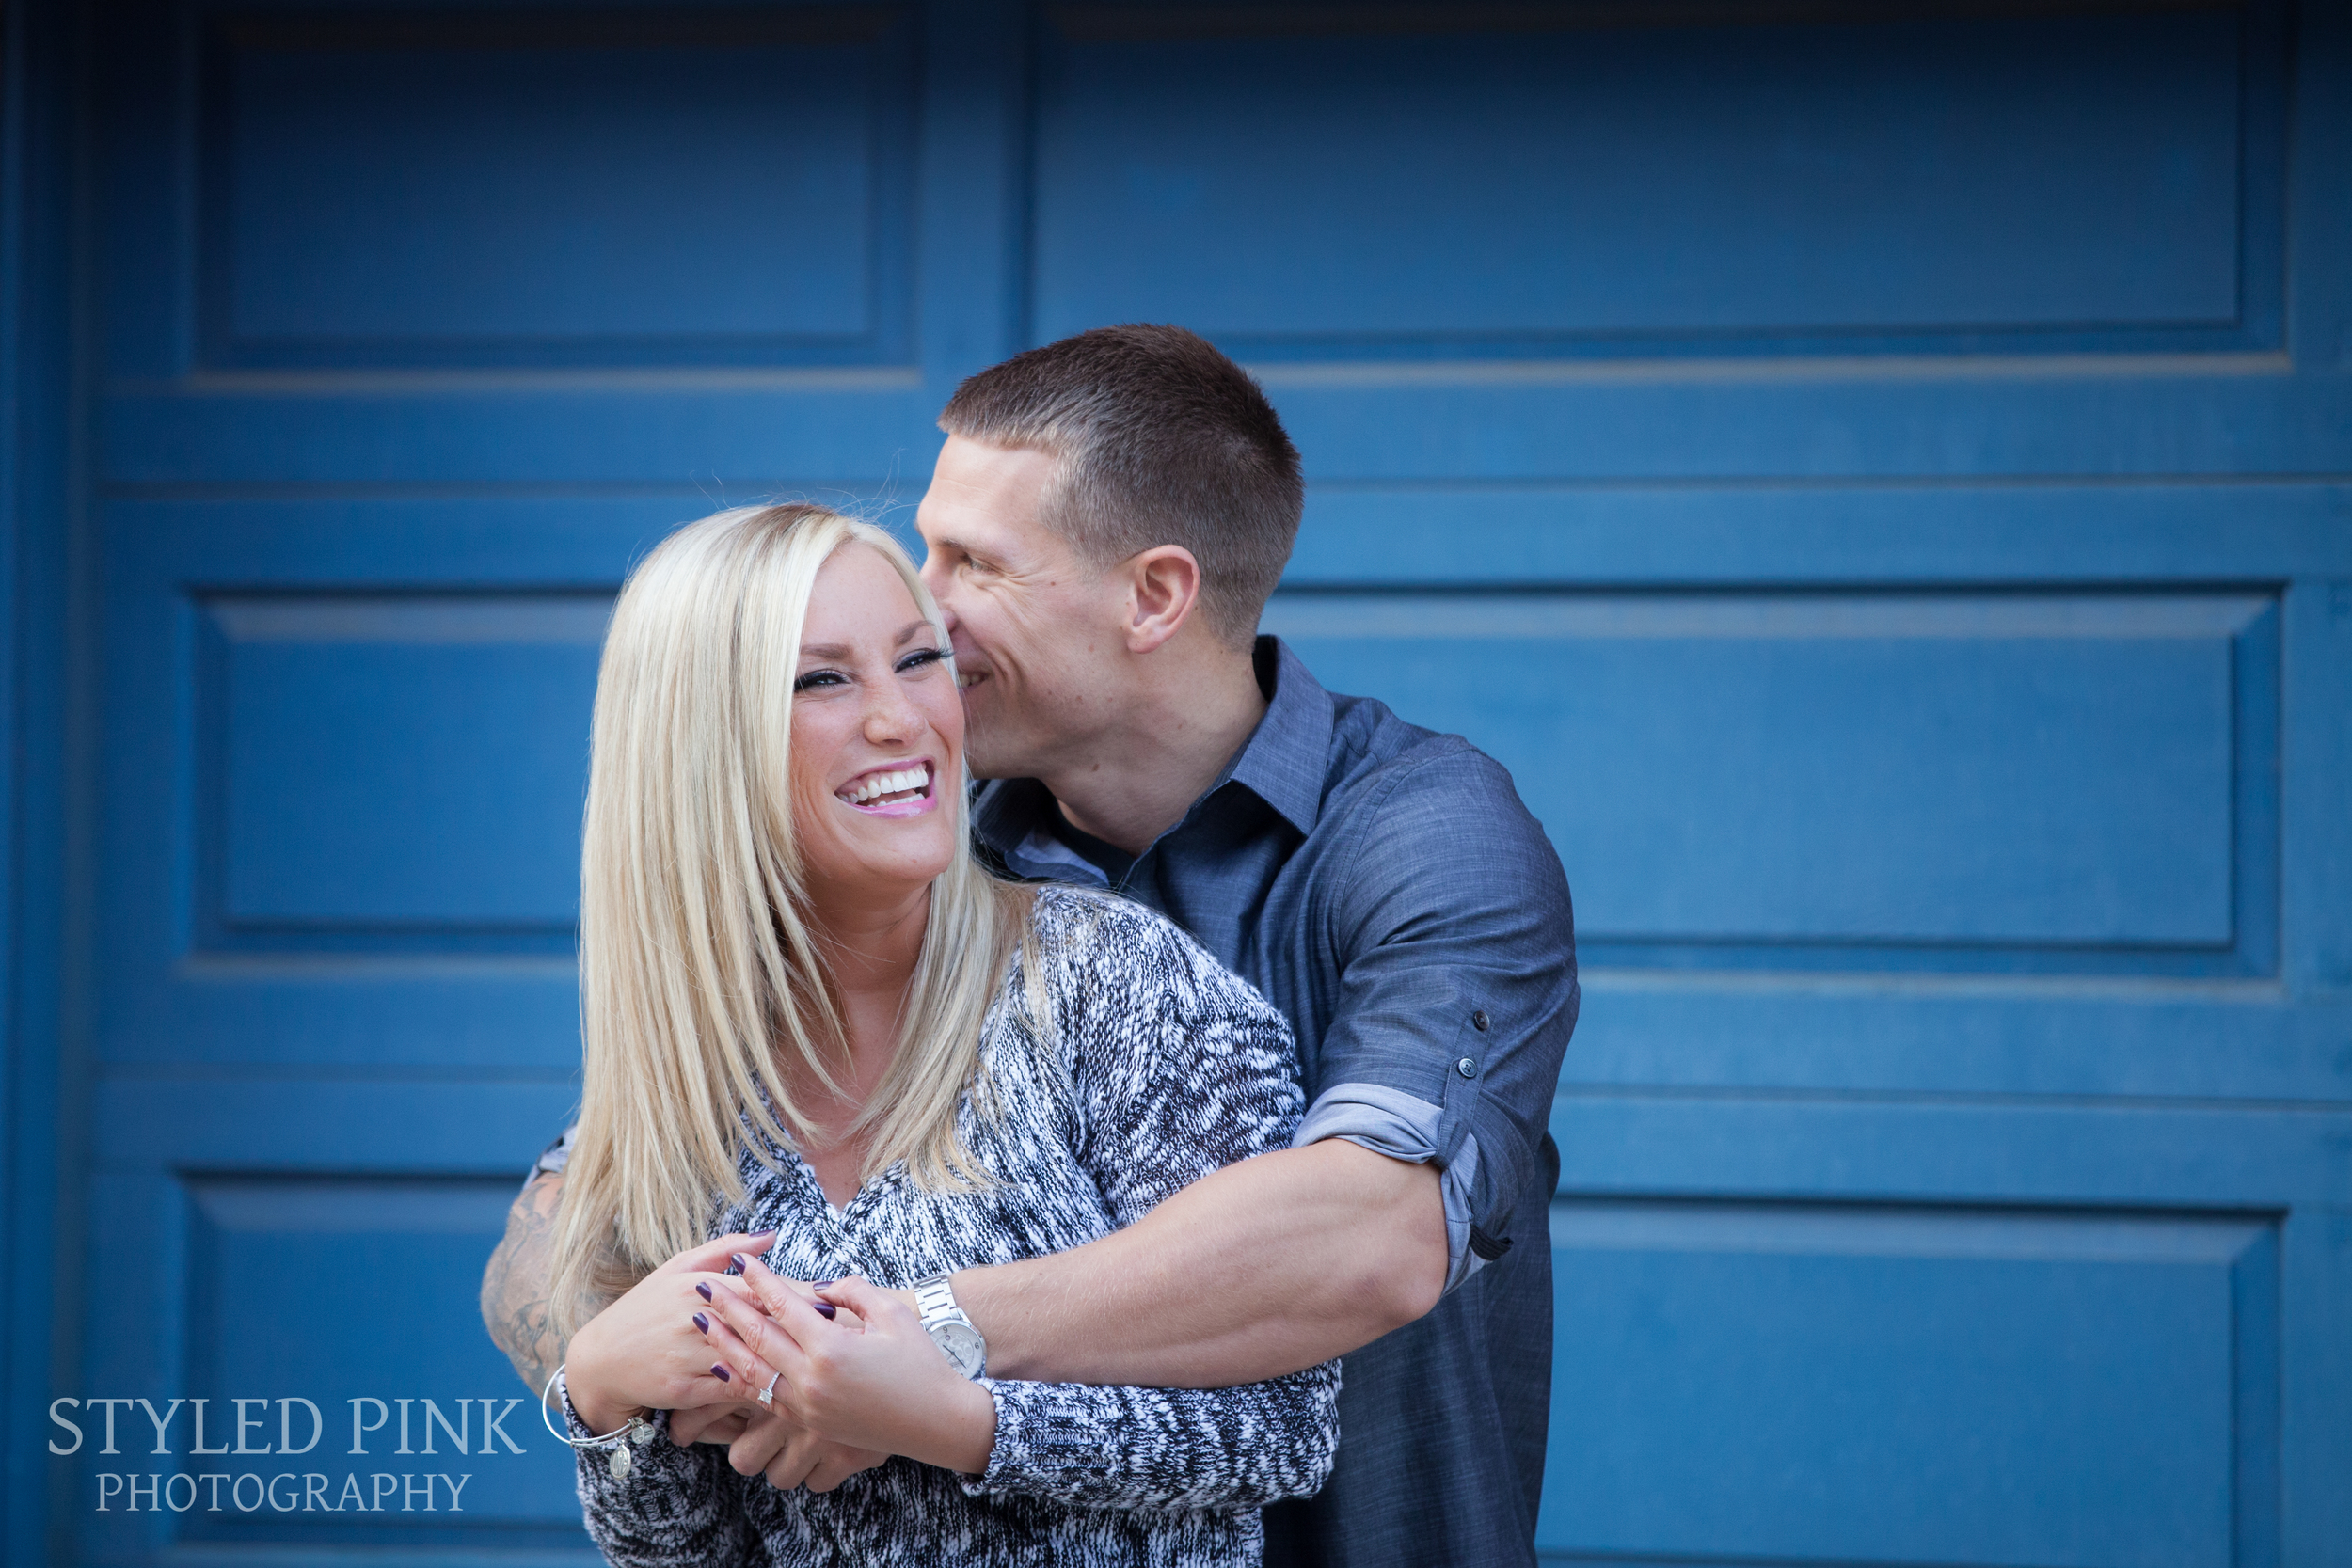 styled-pink-photography-penns-landing-engagement-6